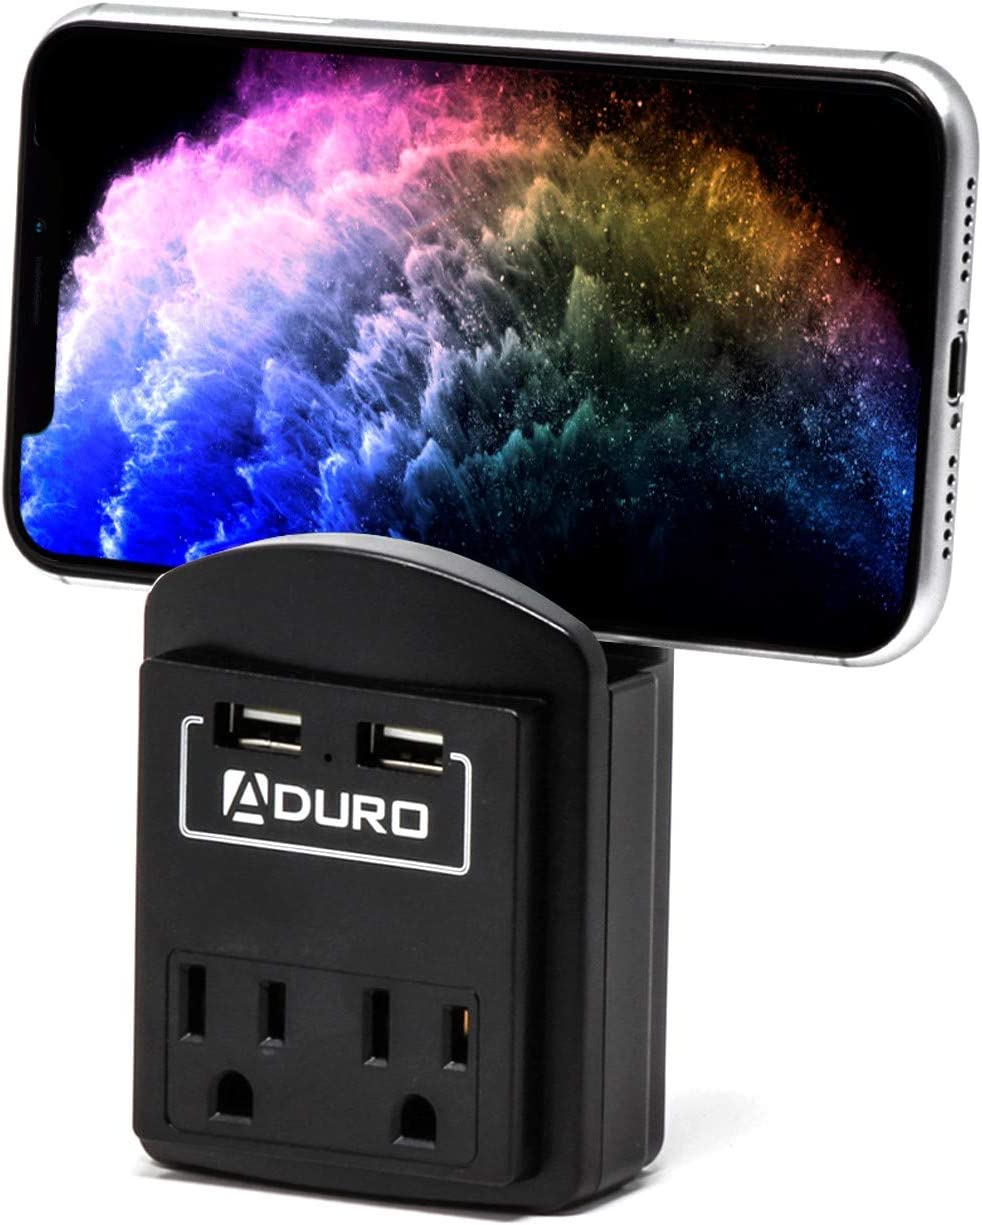 Aduro Surge Protector 2 Outlets Power Strip Station with 2 USB Ports Multiple Outlet Splitter Extender Adapter with Phone Shelf Stand ETL Listed, Black